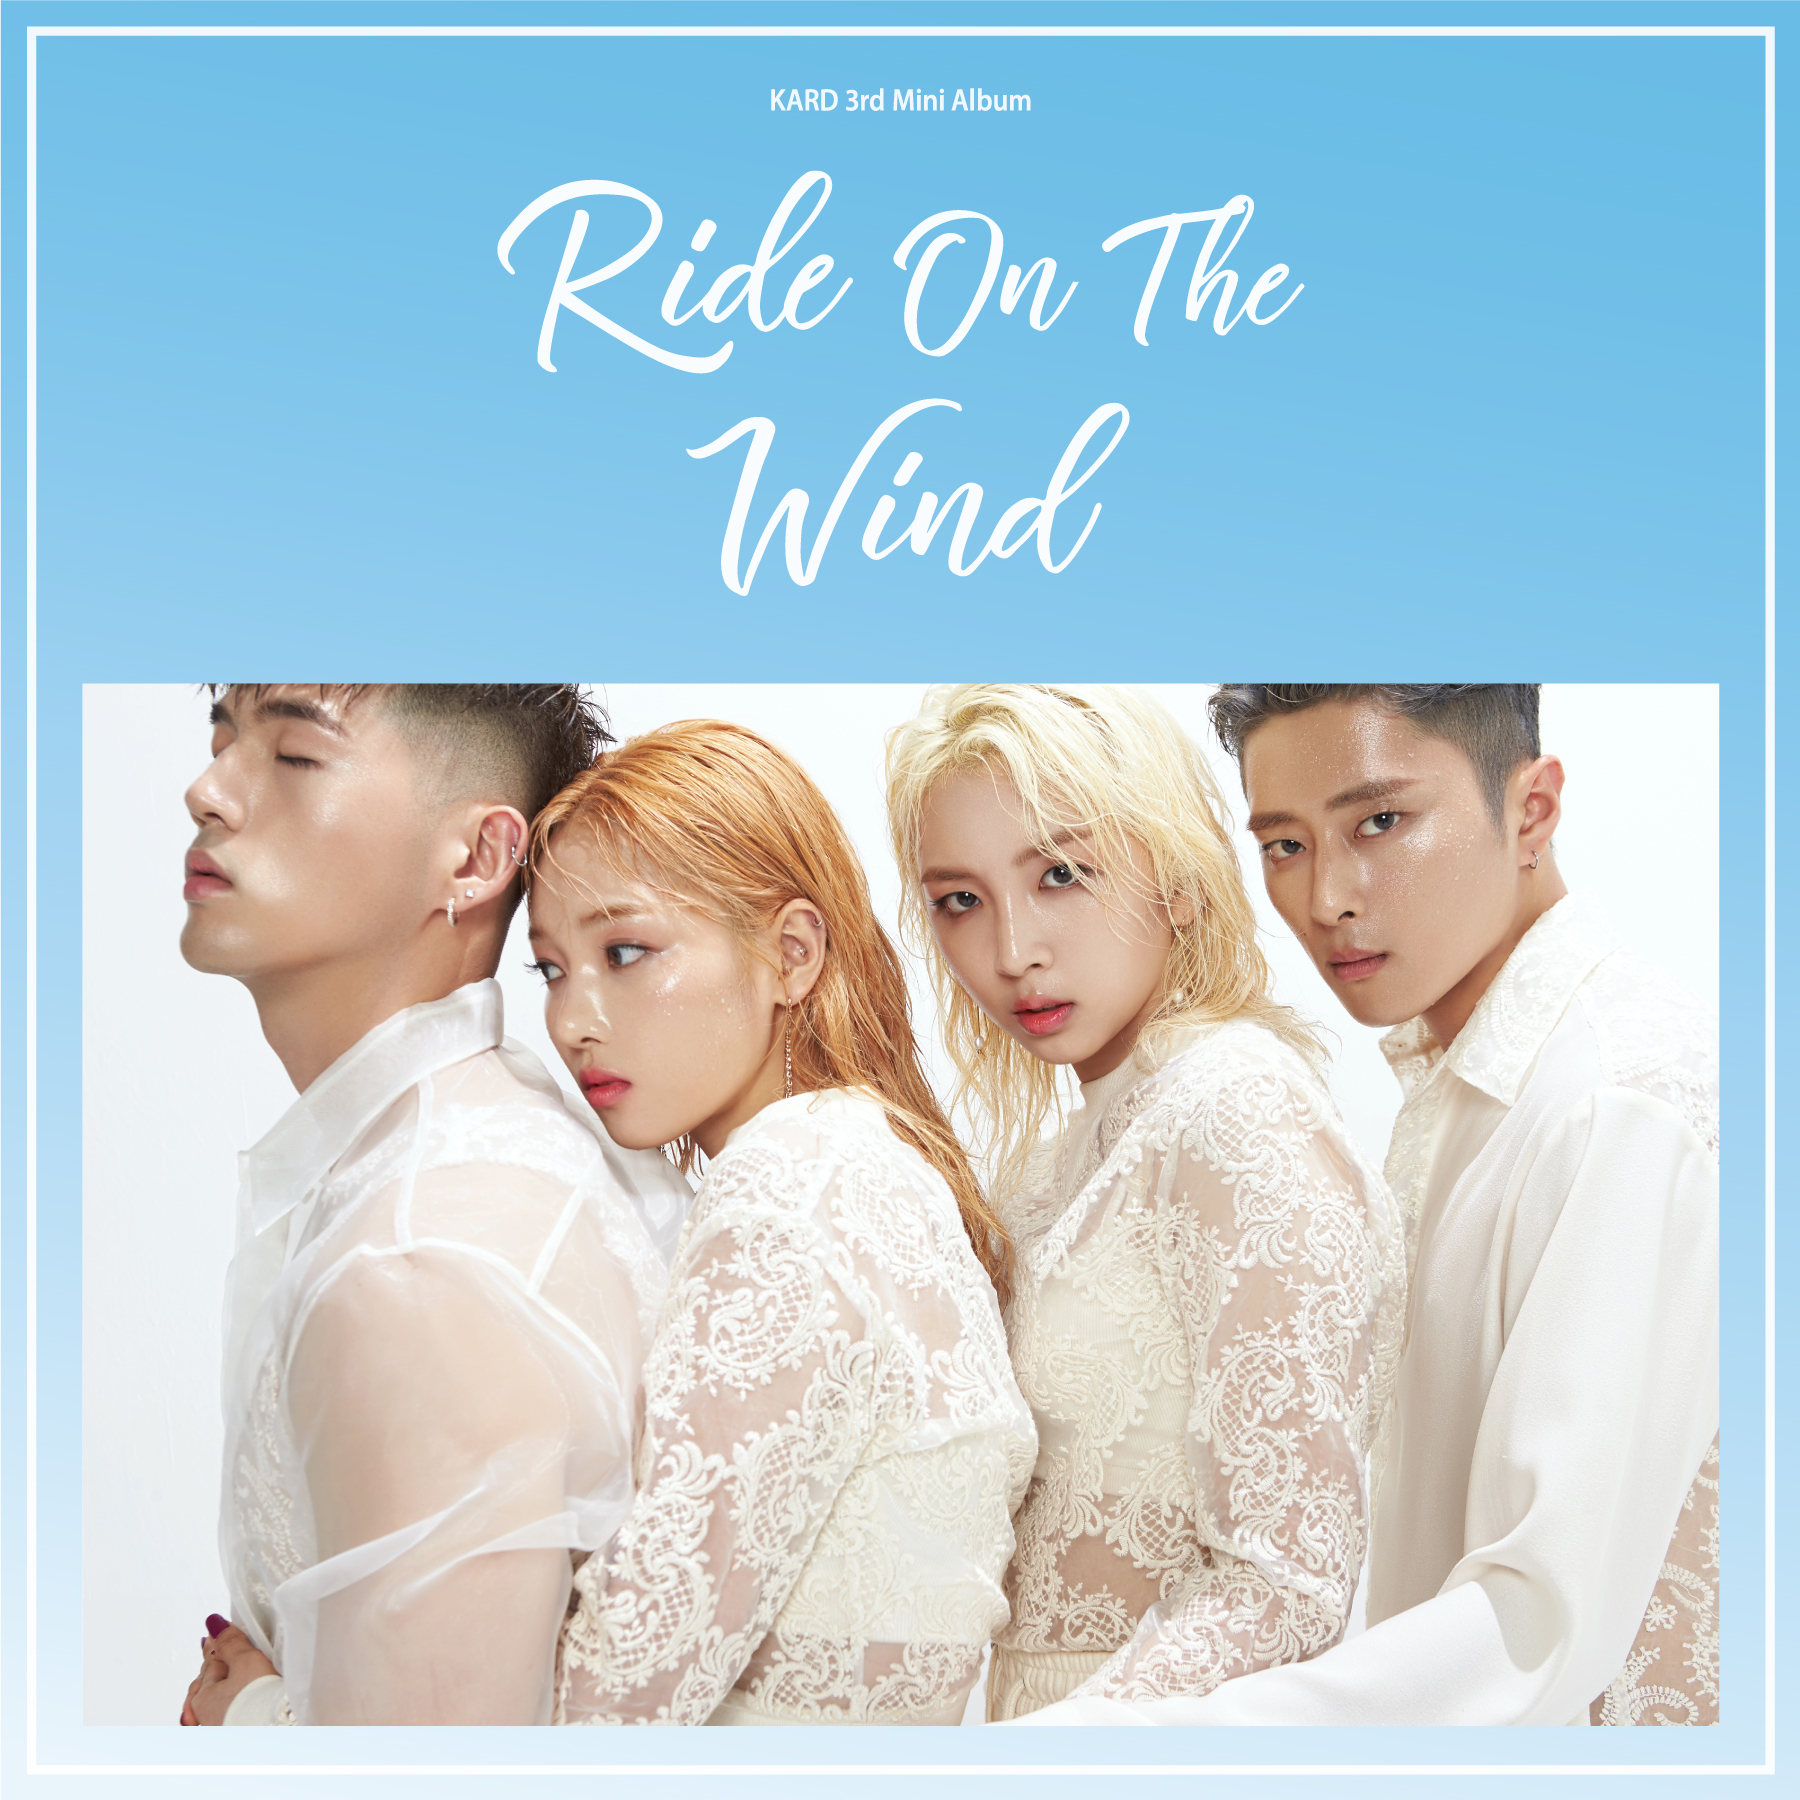 20180727.0655.09 Kard - Ride on the wind cover.jpg